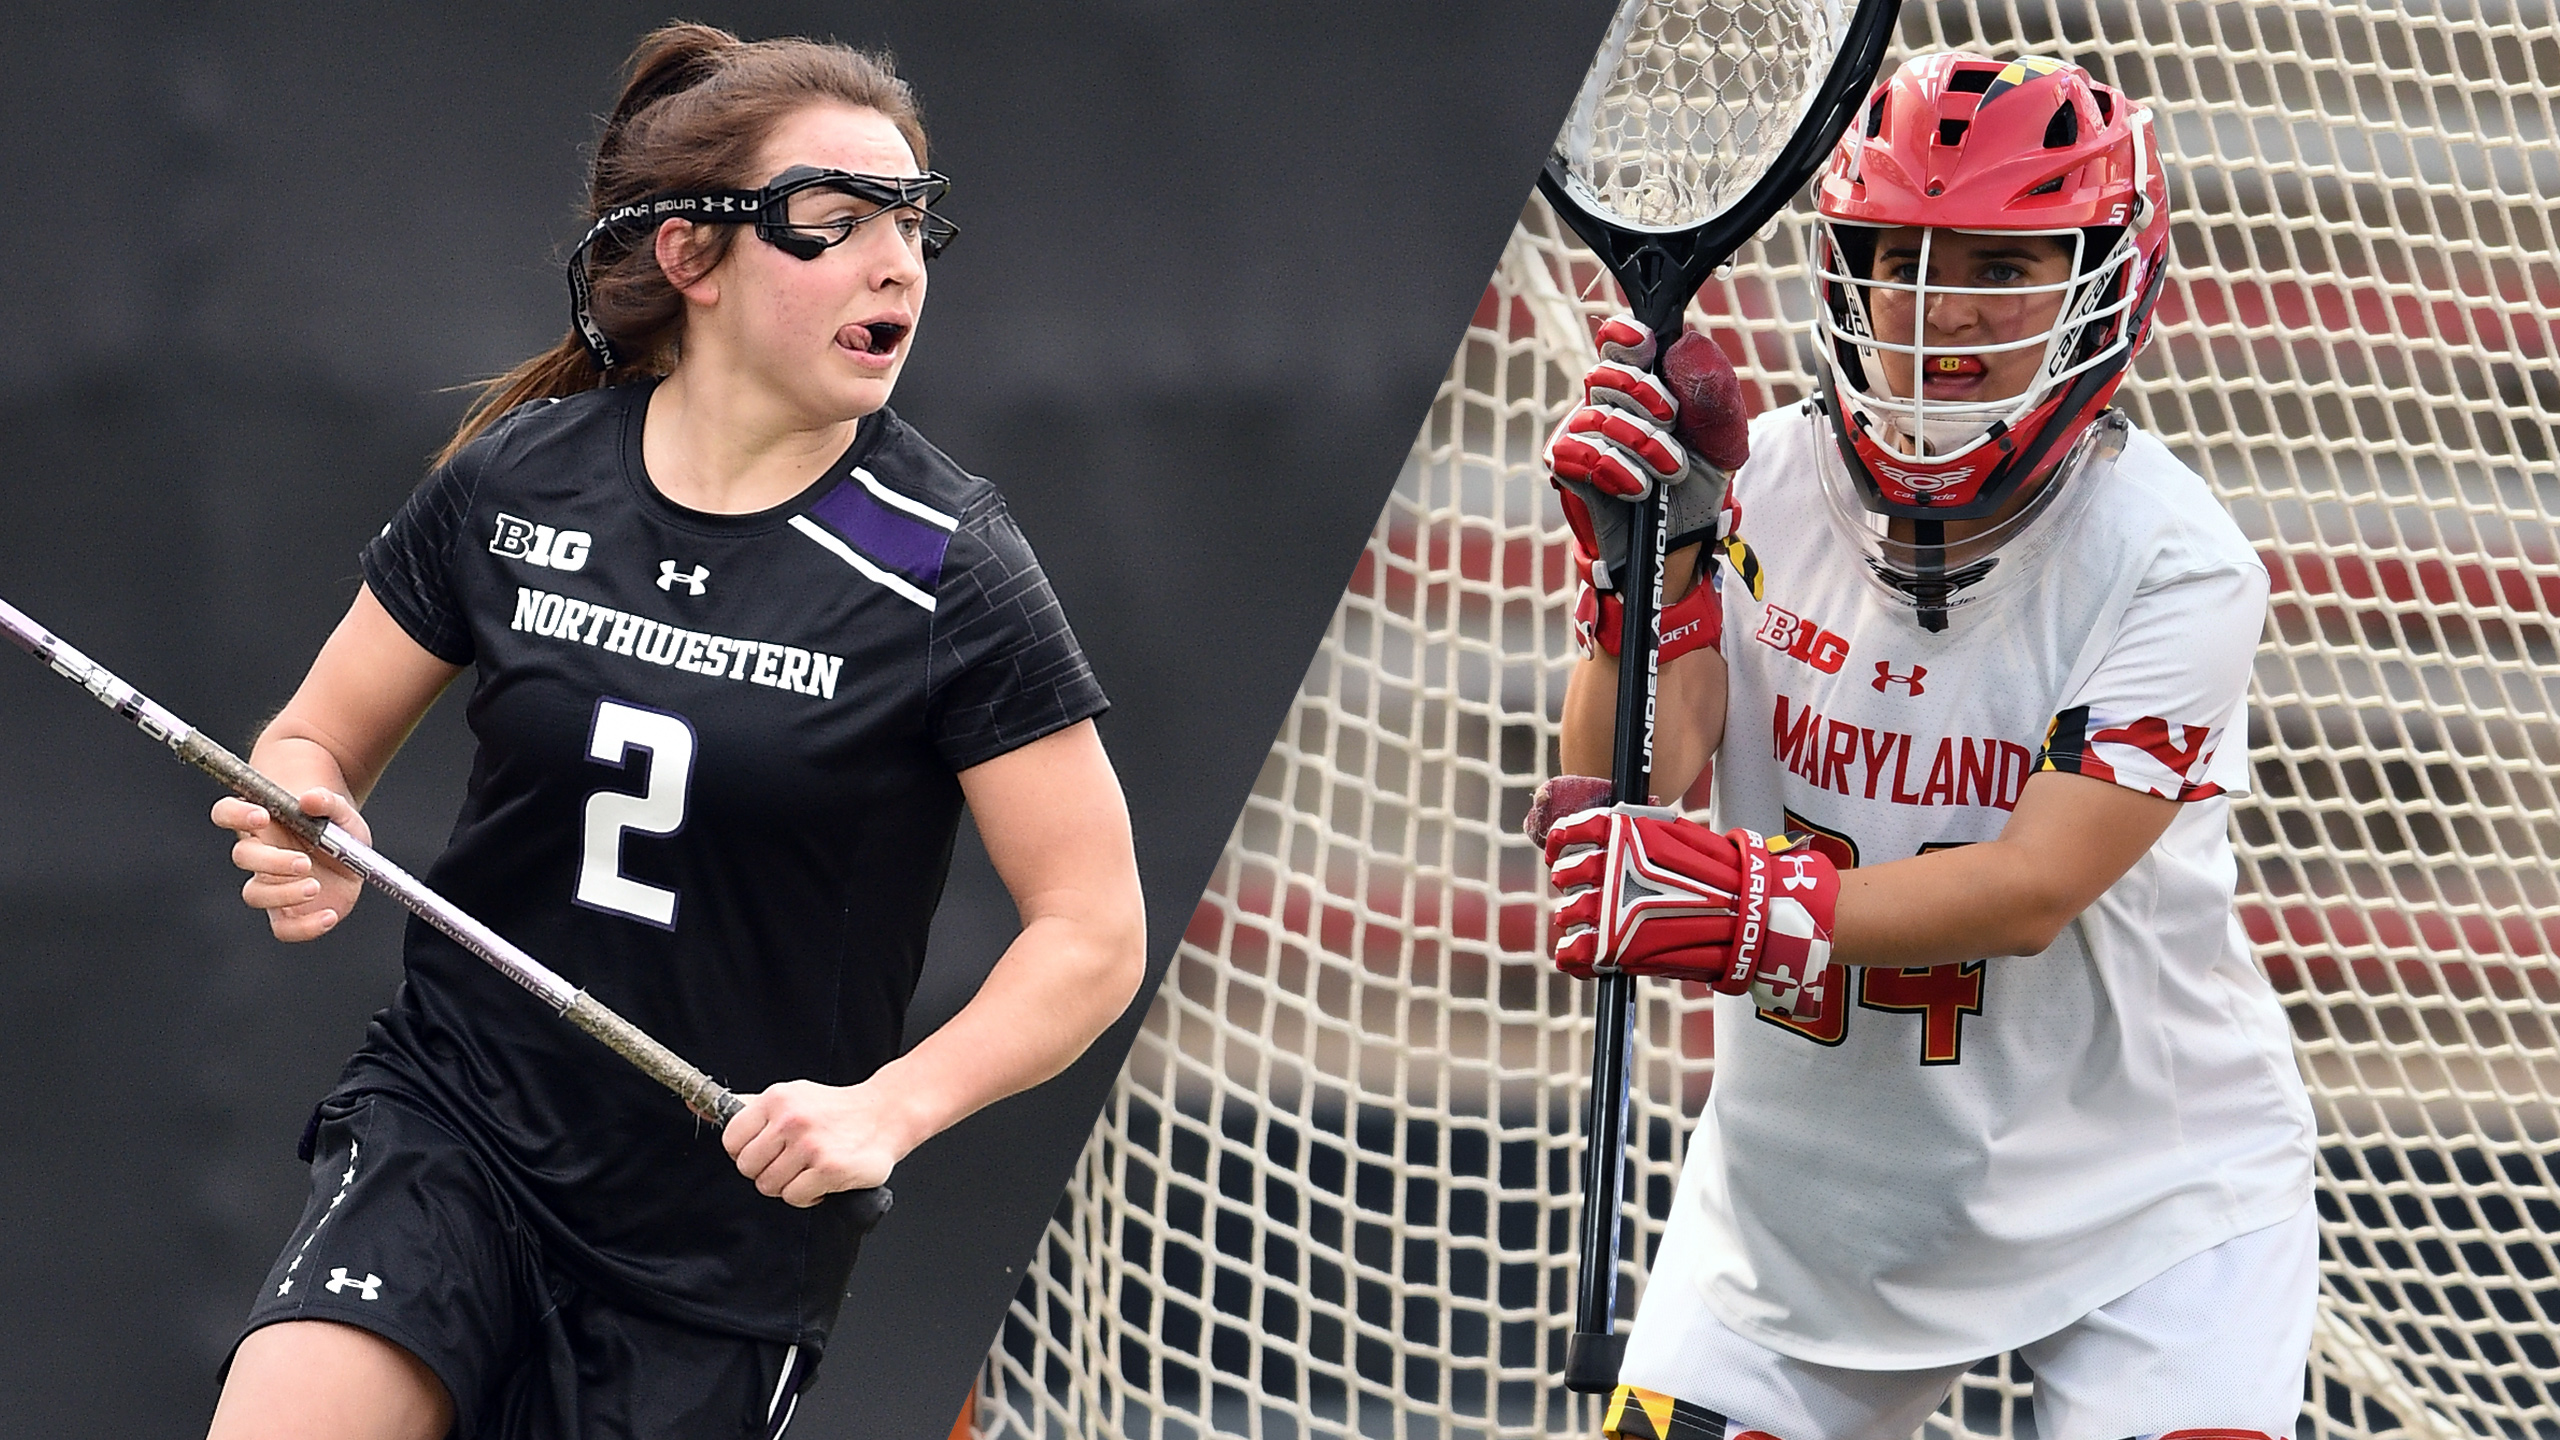 #4 Northwestern vs. #1 Maryland (Semifinal #2)